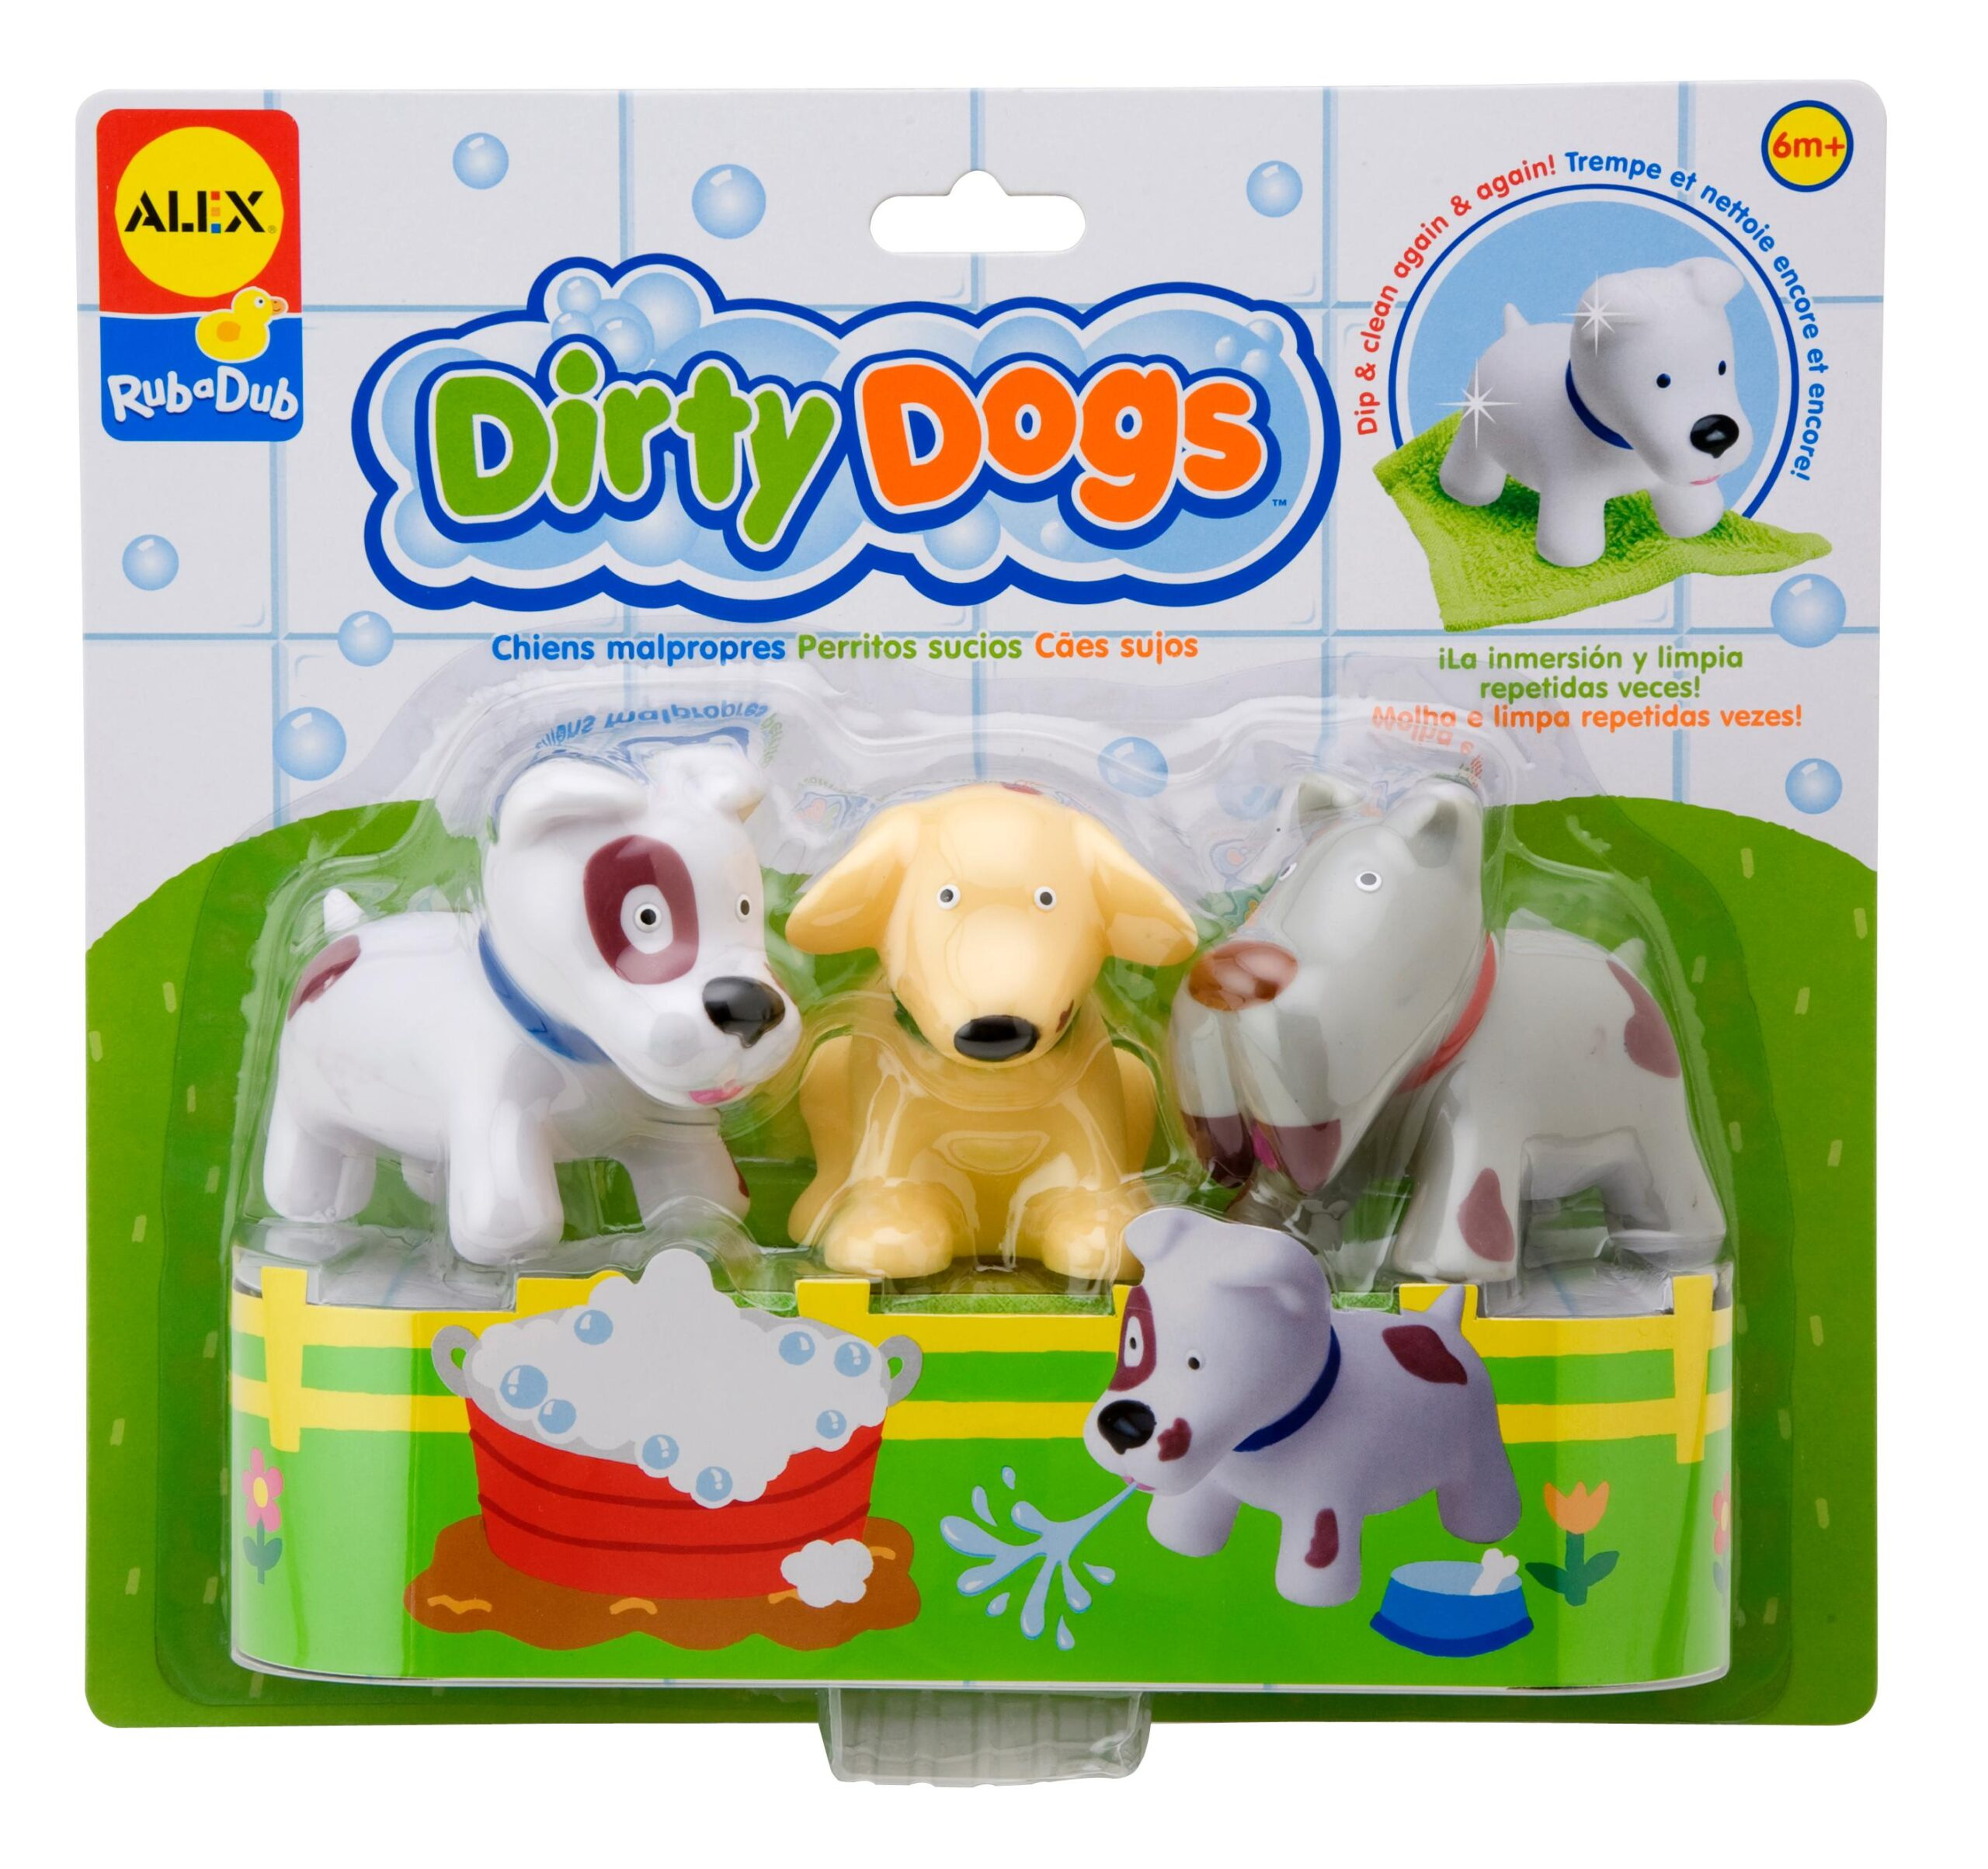 Dirty Dogs A2z Science Learning